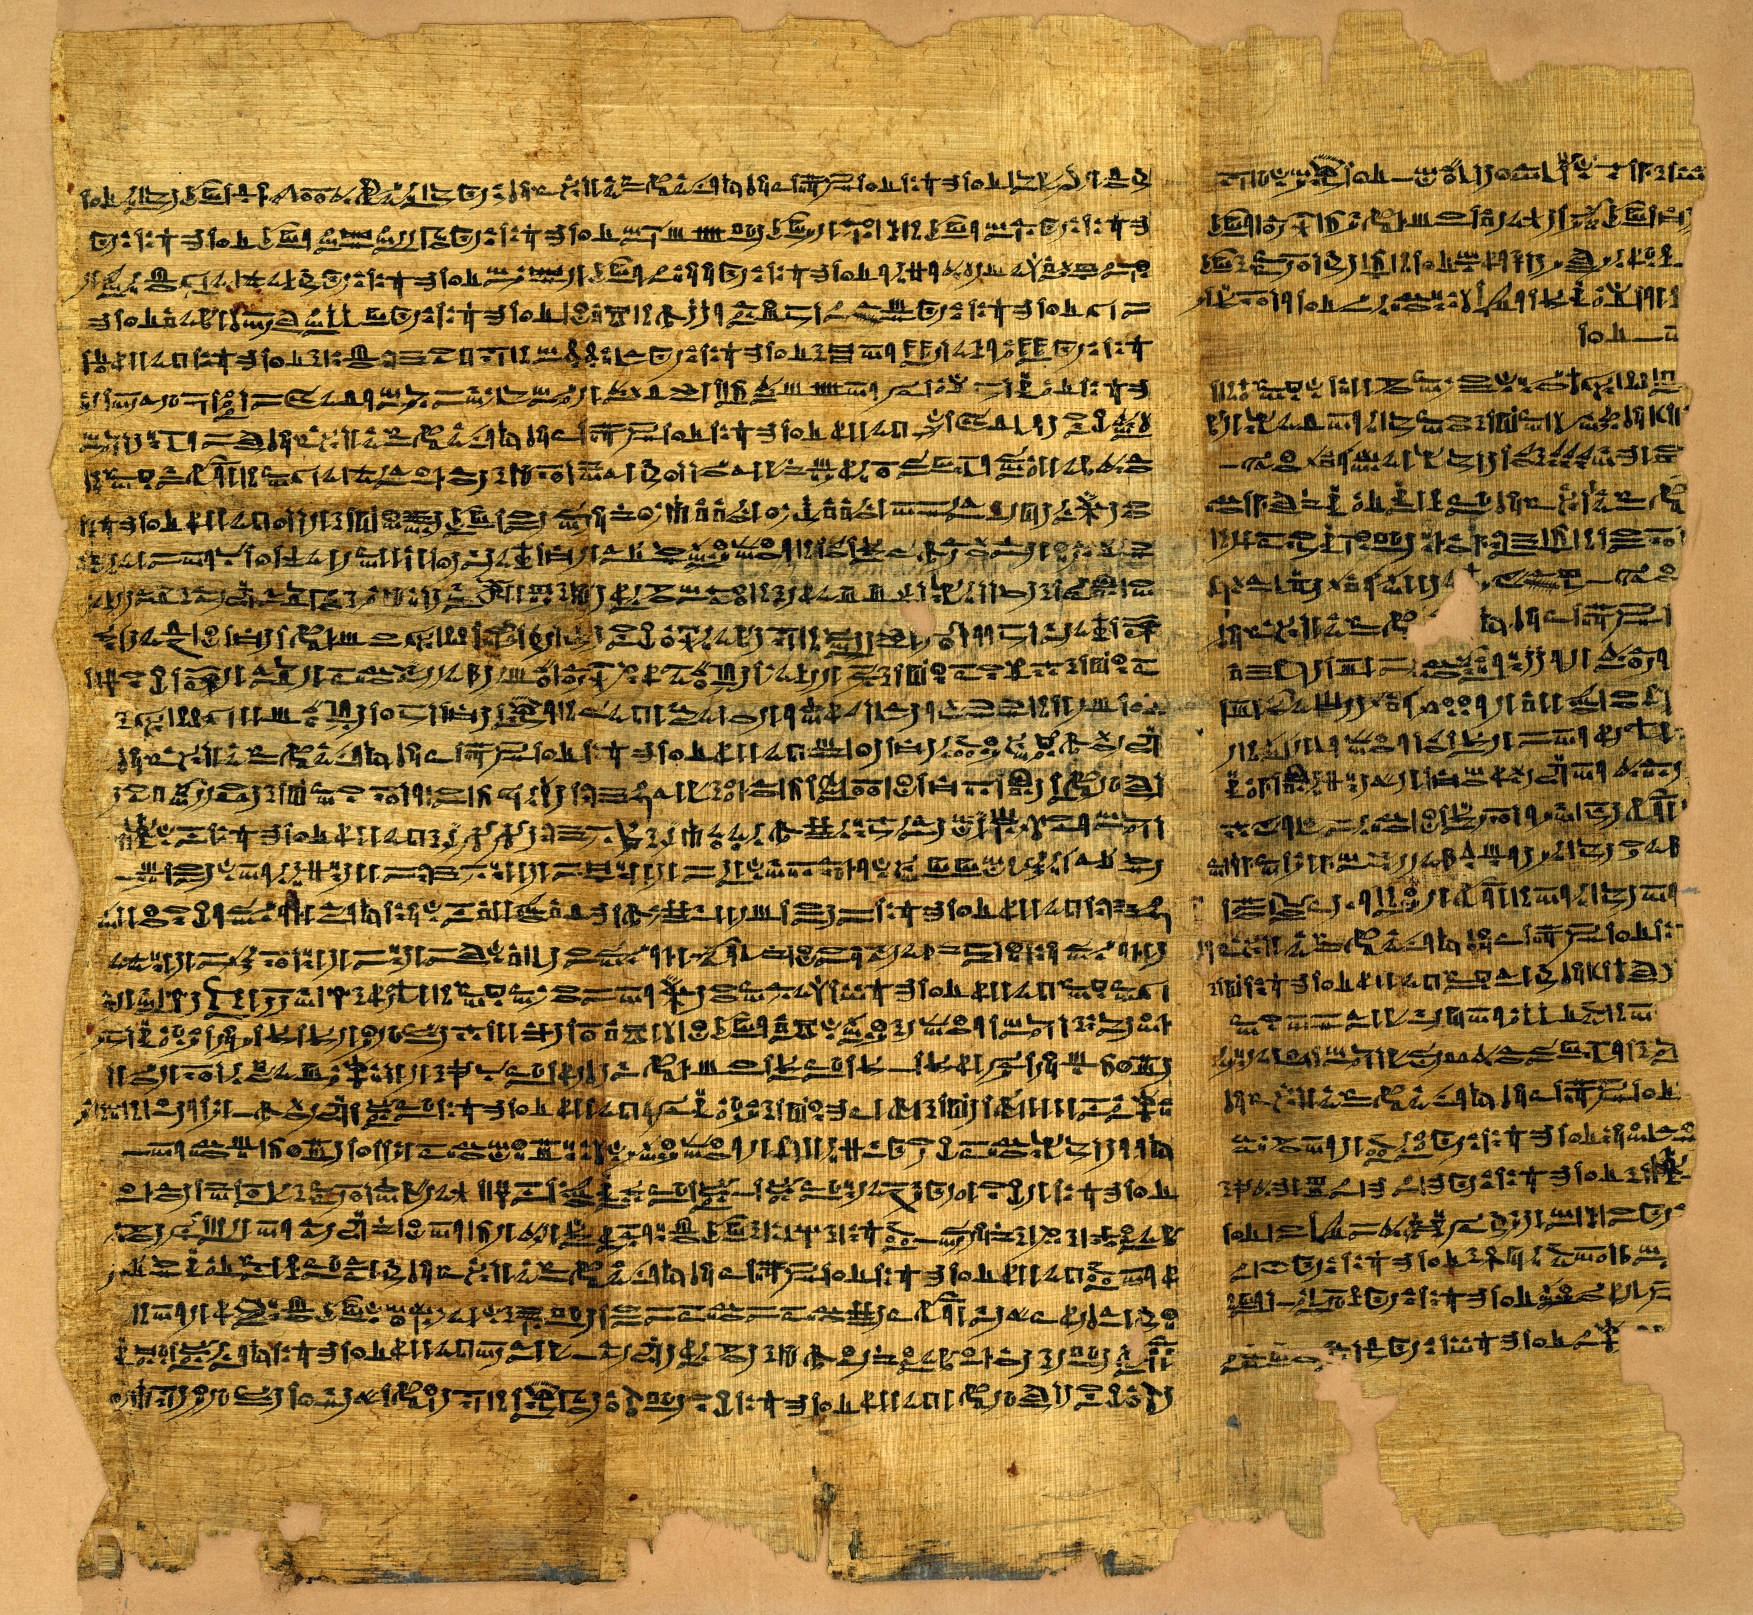 A light brown coloured papyrus covered in black ink writing.